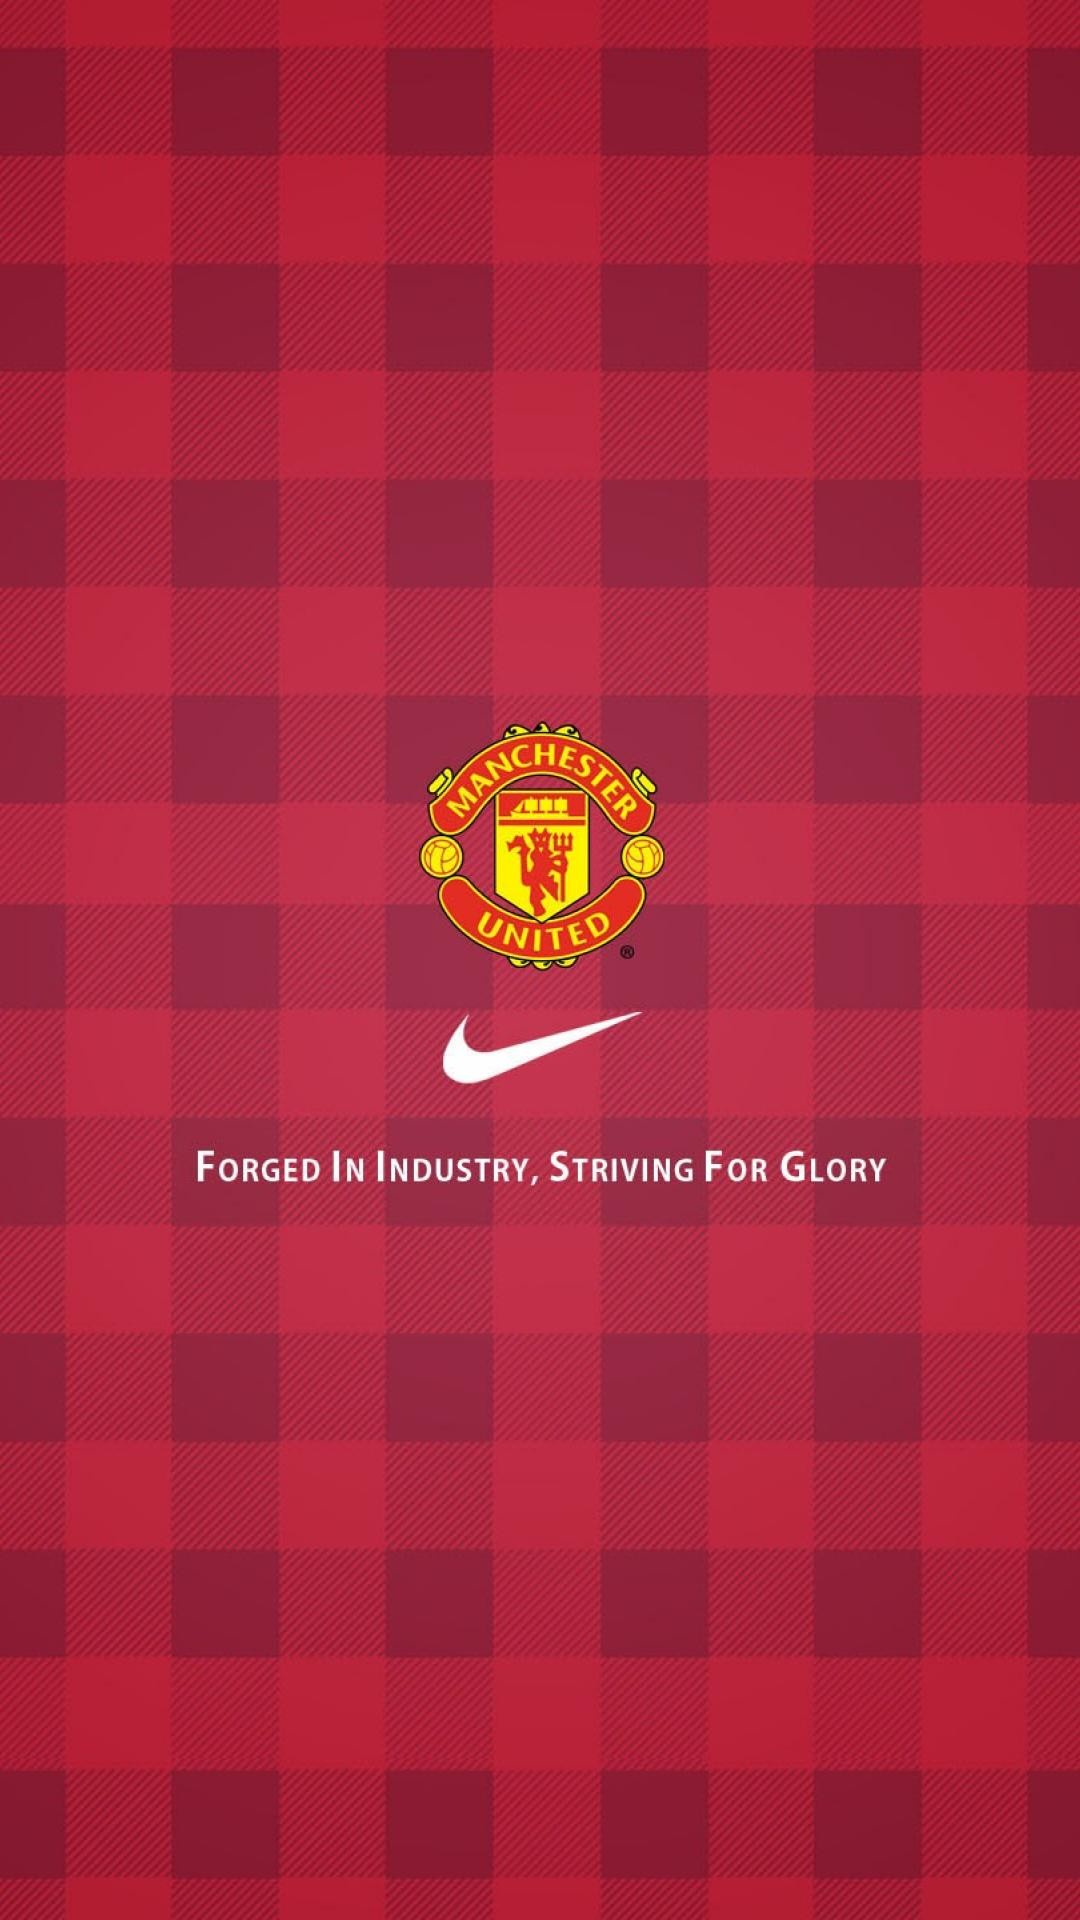 Manchester United Wallpaper Note 2 | Simple Image Gallery